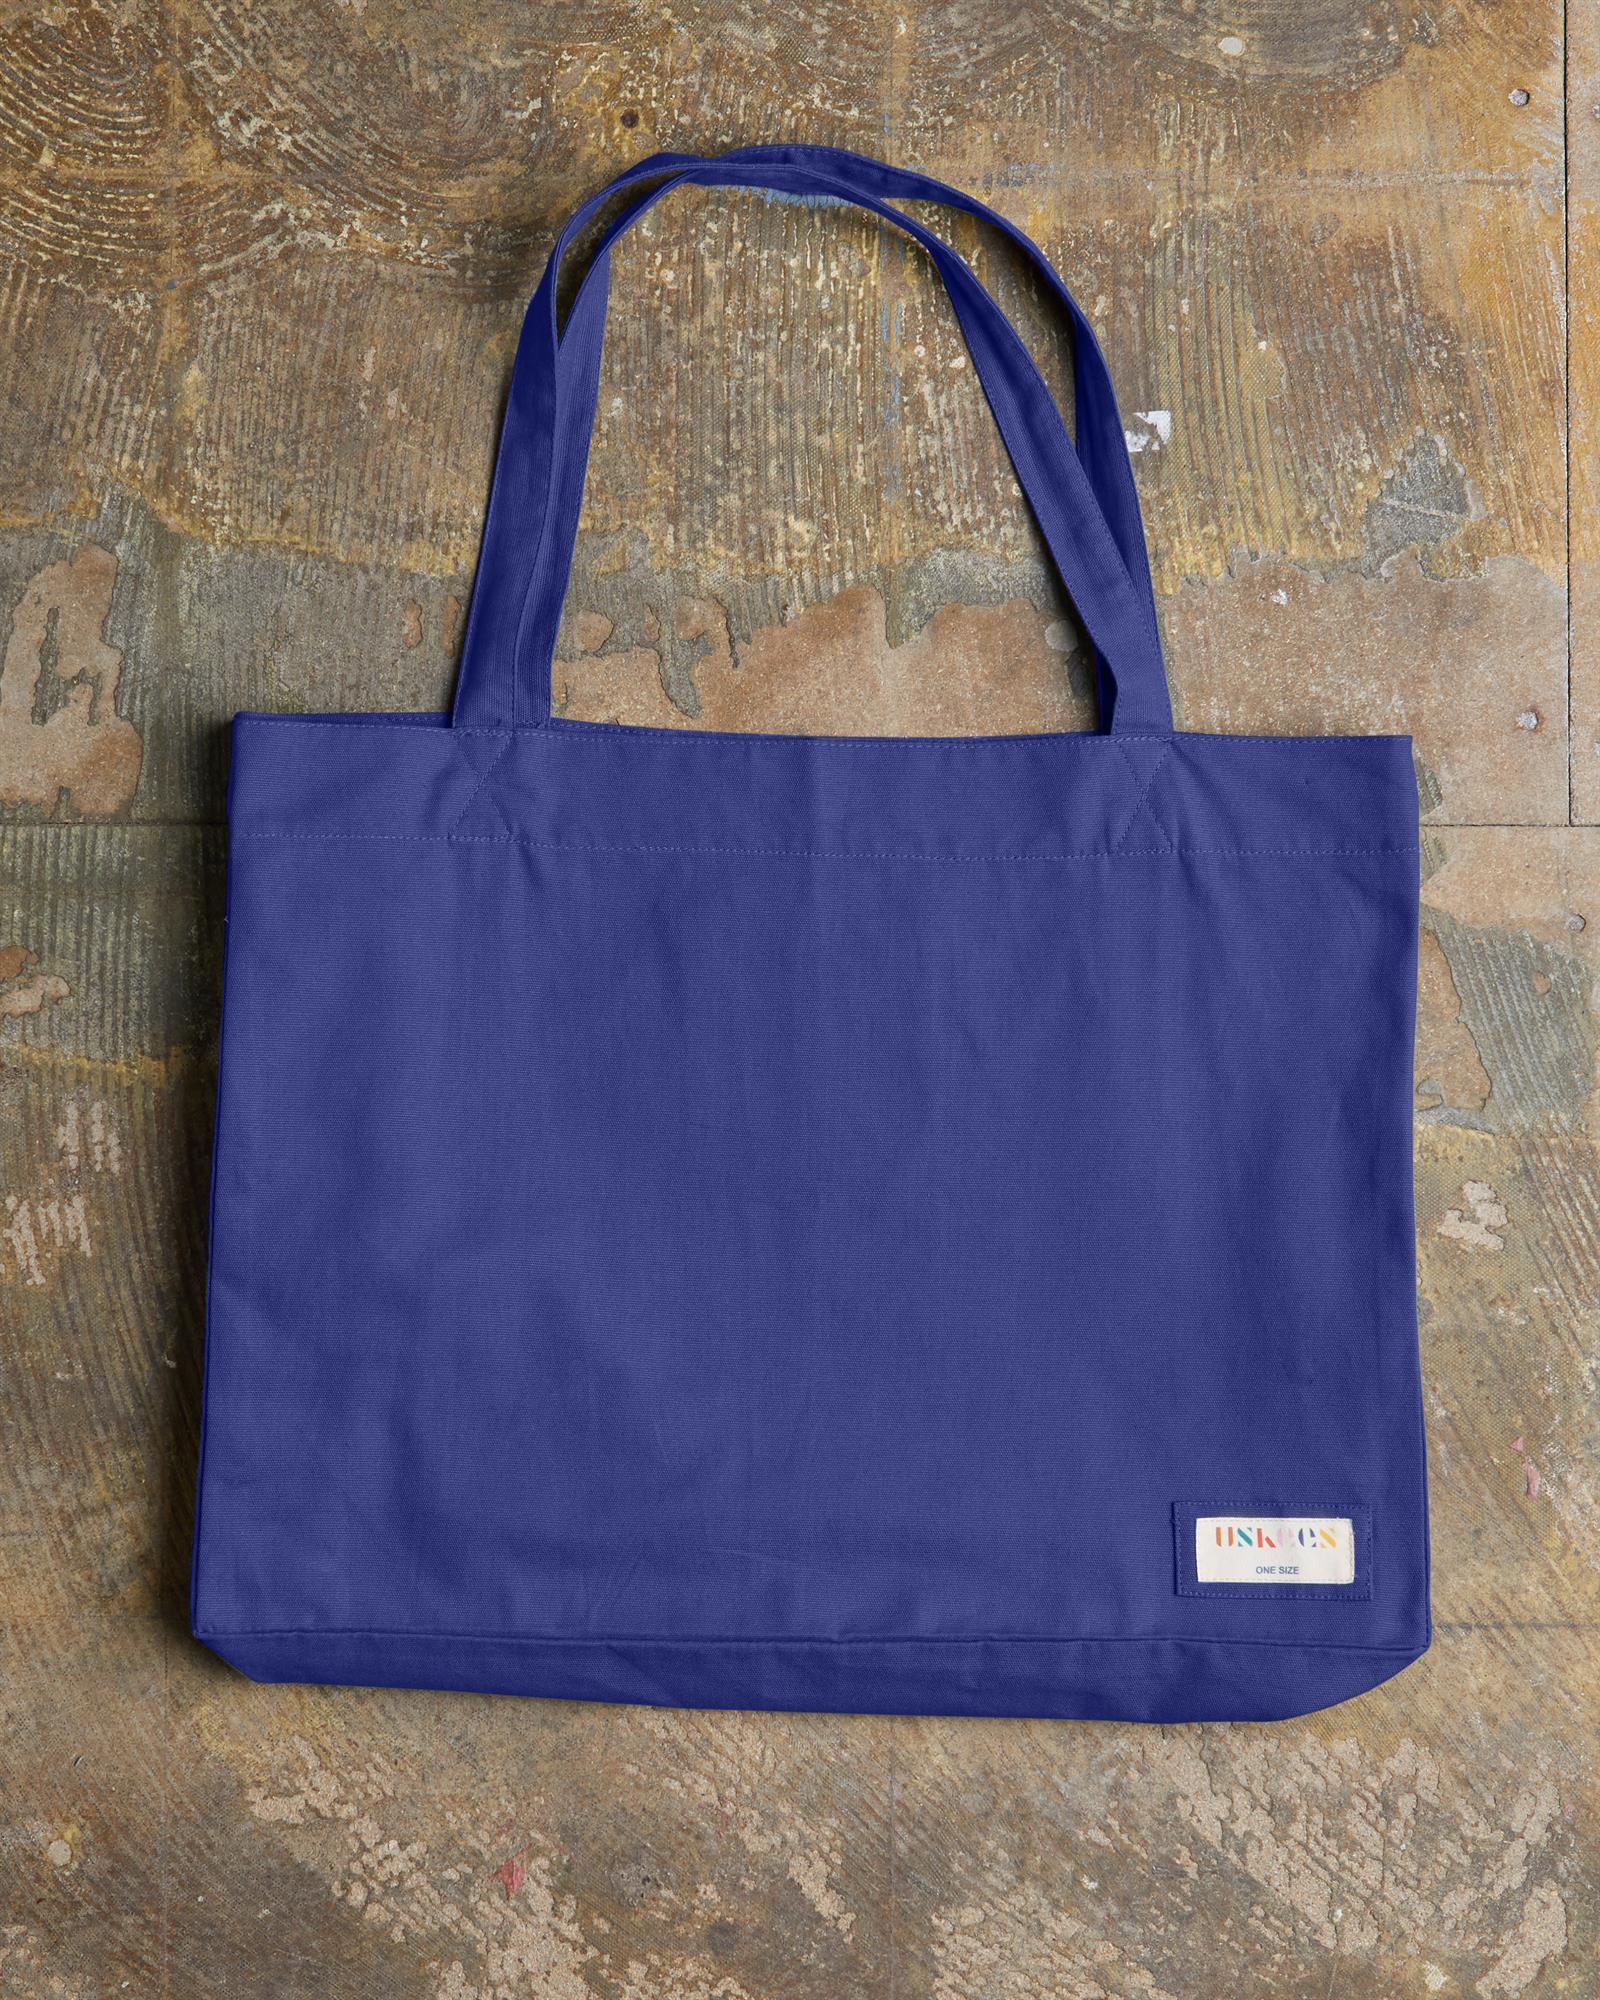 The #4001 Large Organic Tote Bag - Ultra Blue